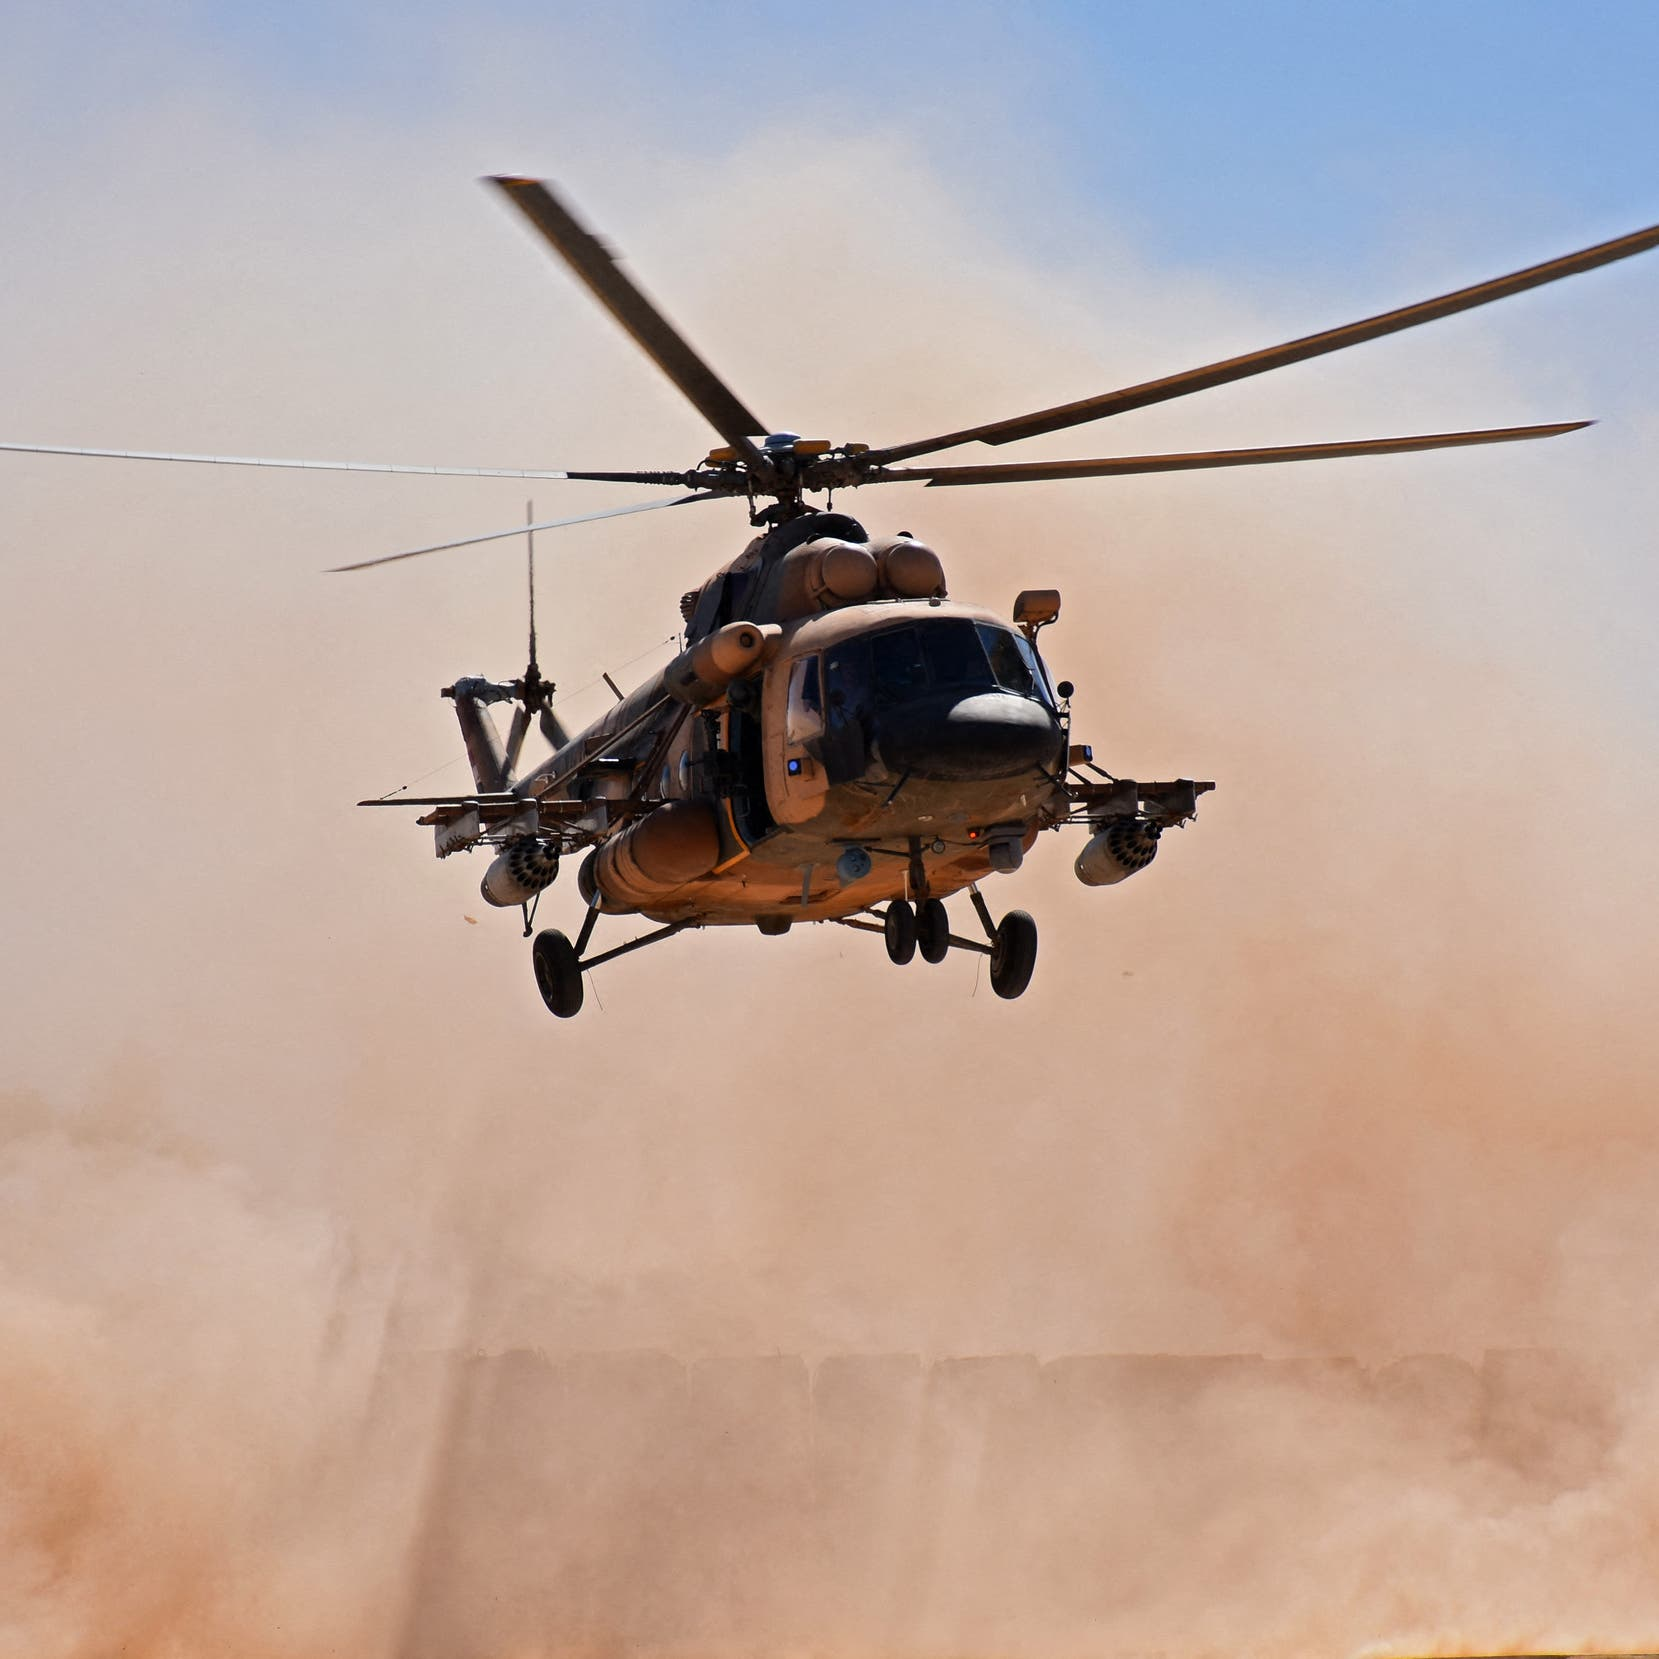 Five killed in helicopter crash during 'combat mission': Iraq military